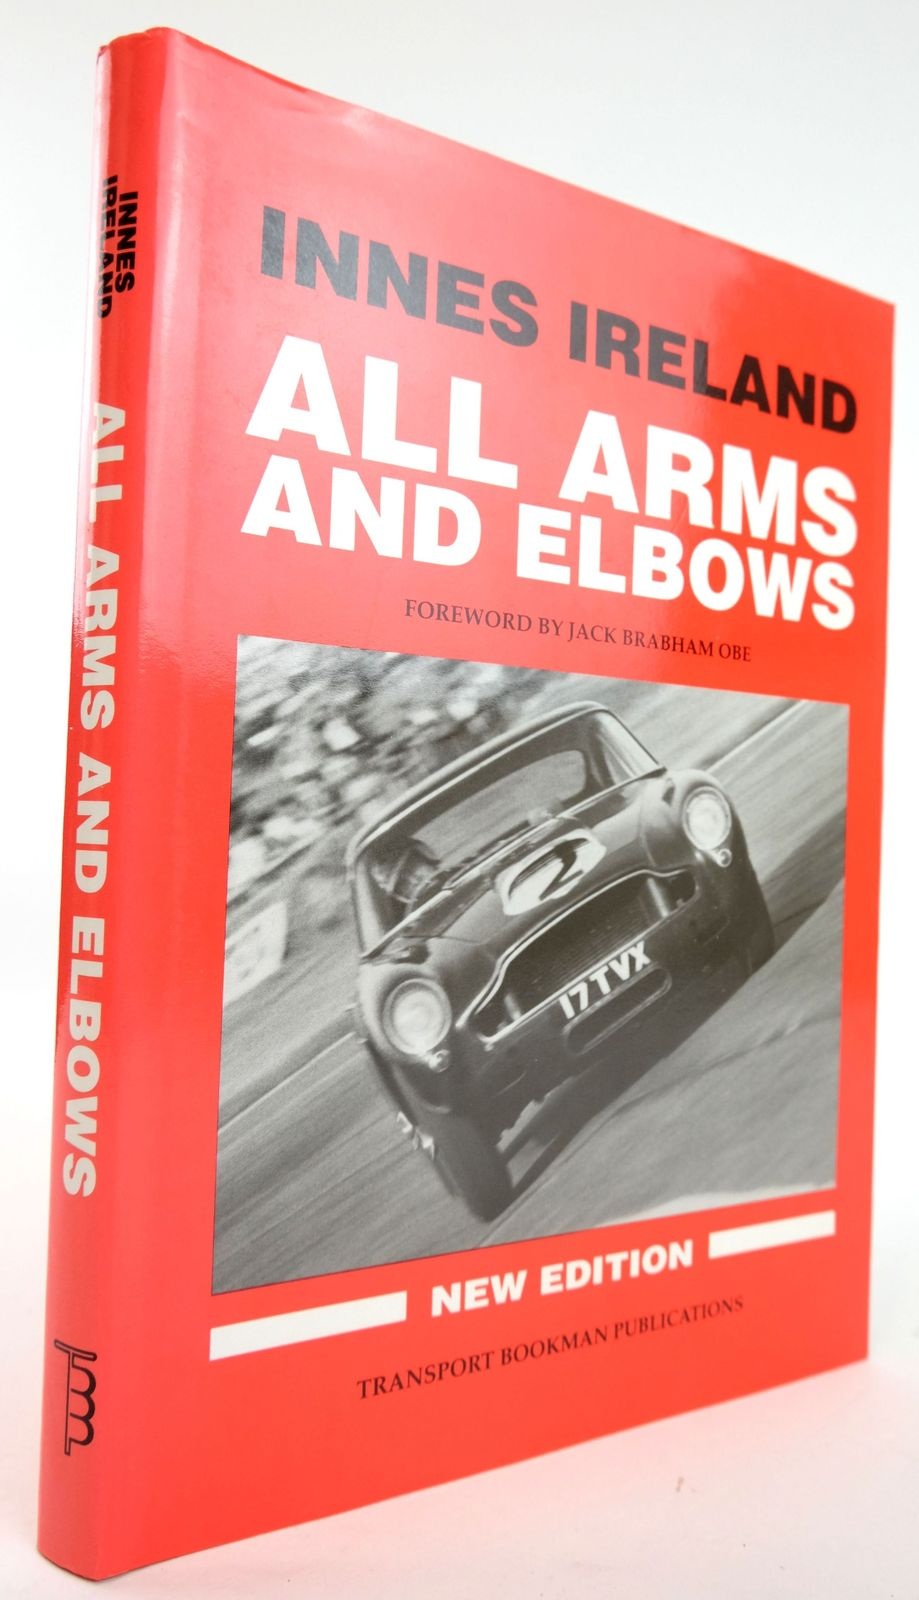 Photo of ALL ARMS AND ELBOWS written by Ireland, Innes published by Transport Bookman Publications (STOCK CODE: 1820131)  for sale by Stella & Rose's Books